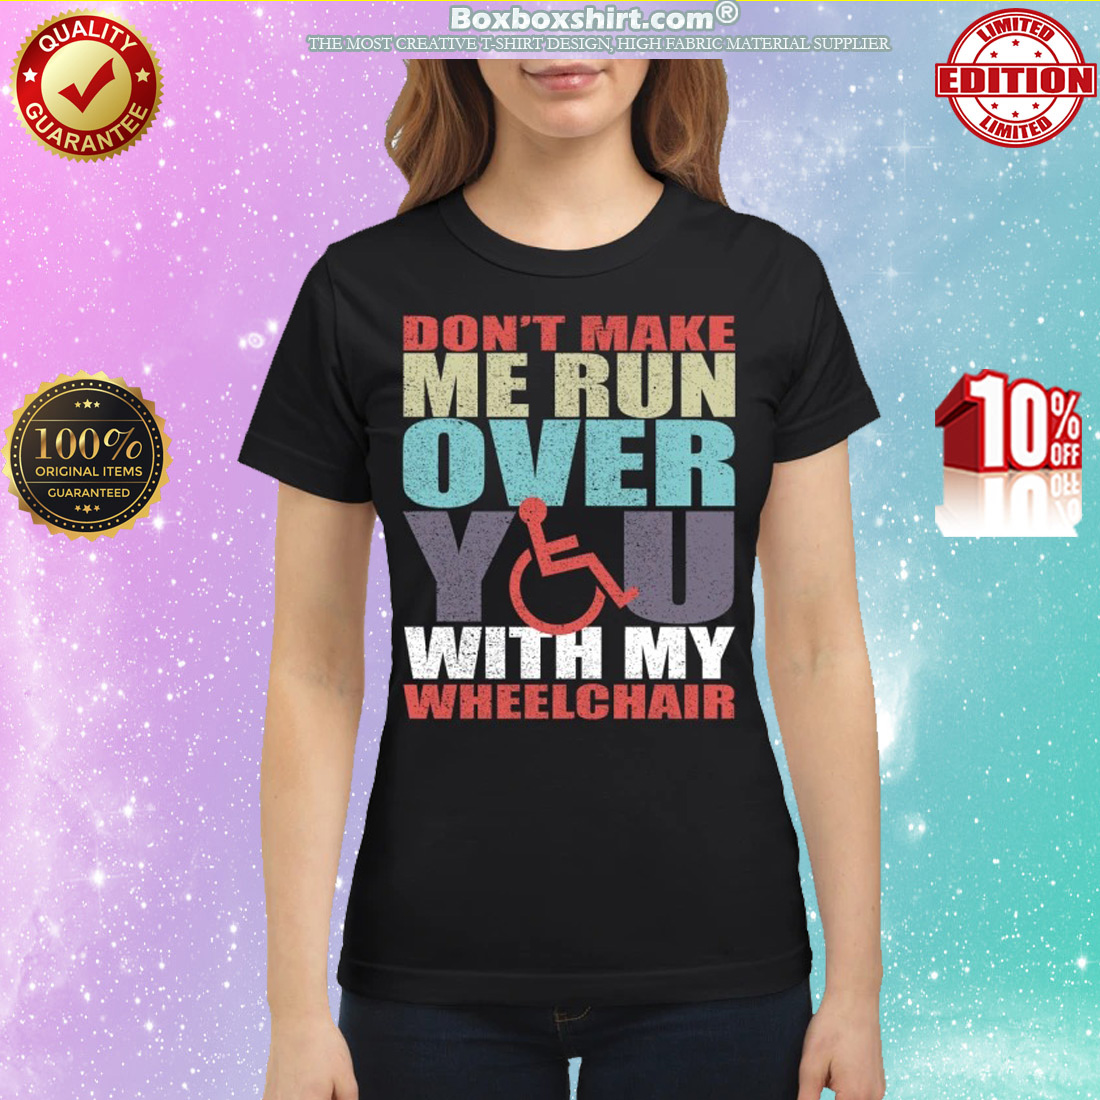 Don't make me run over you with my wheelchair classic shirt